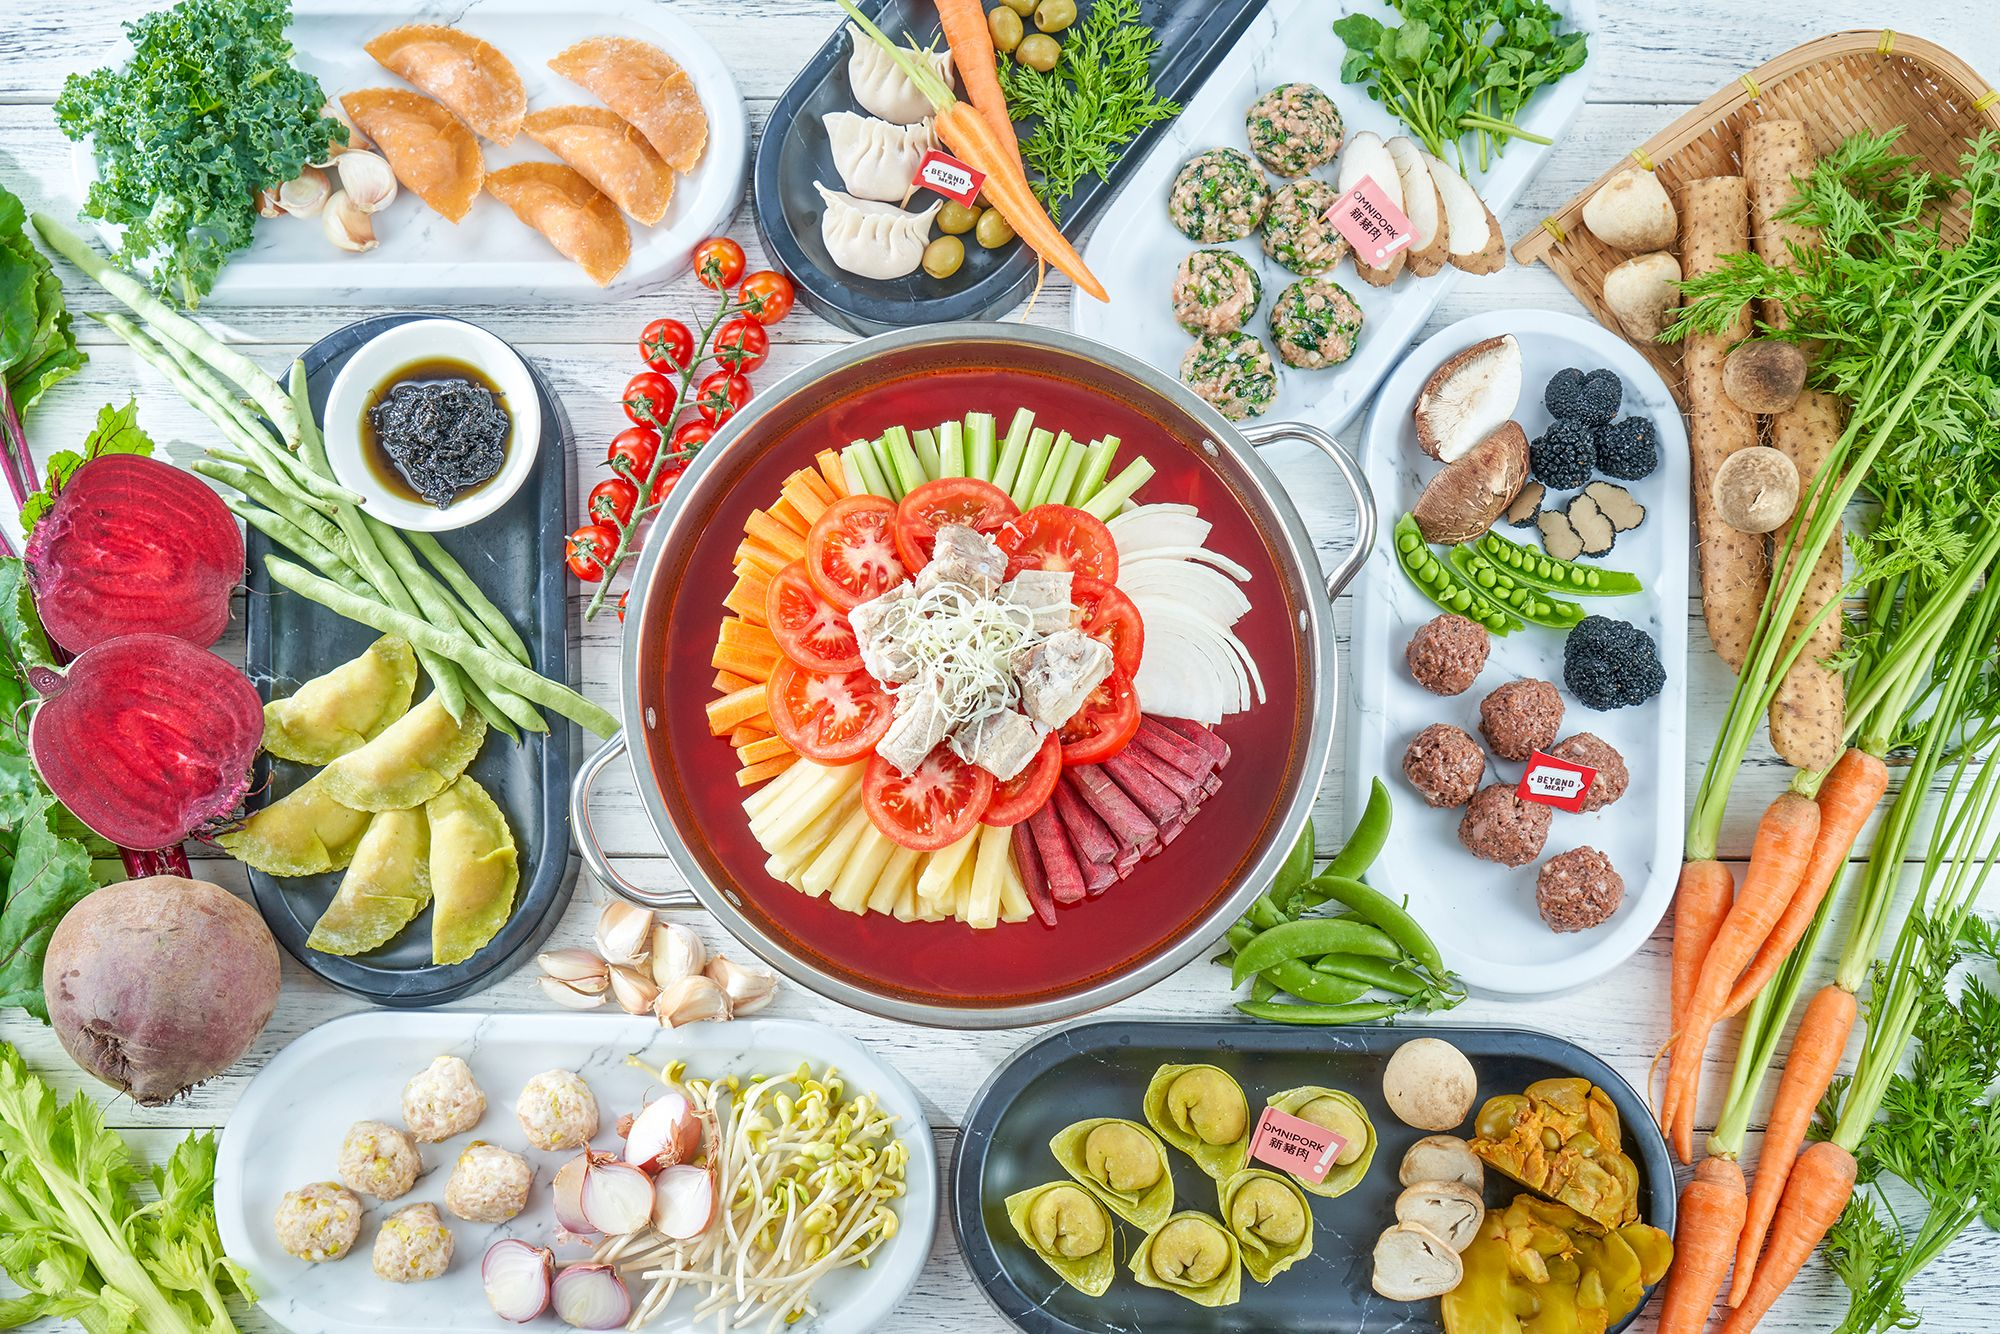 Hotpot Gets Healthy With Megan's Kitchen's New Plant-Based Offerings